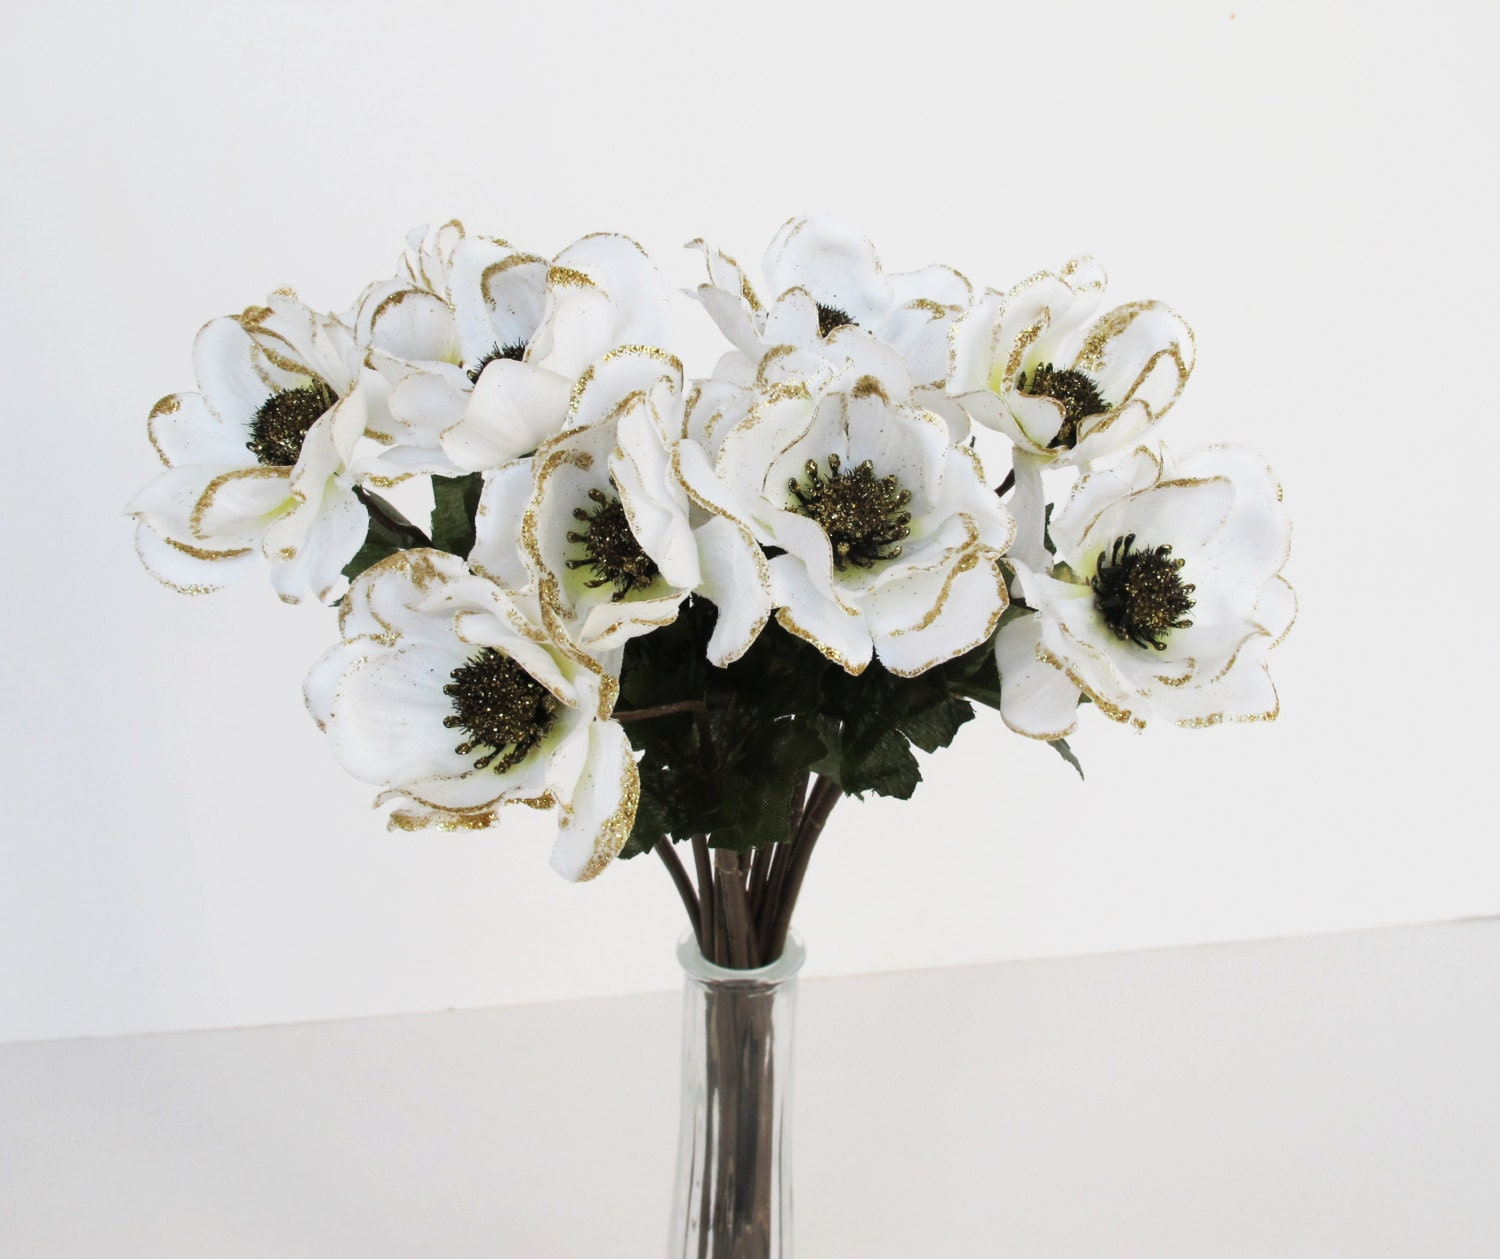 10 Silk Poppies Anemones Shiny Glitter Artificial Flowers White Gold